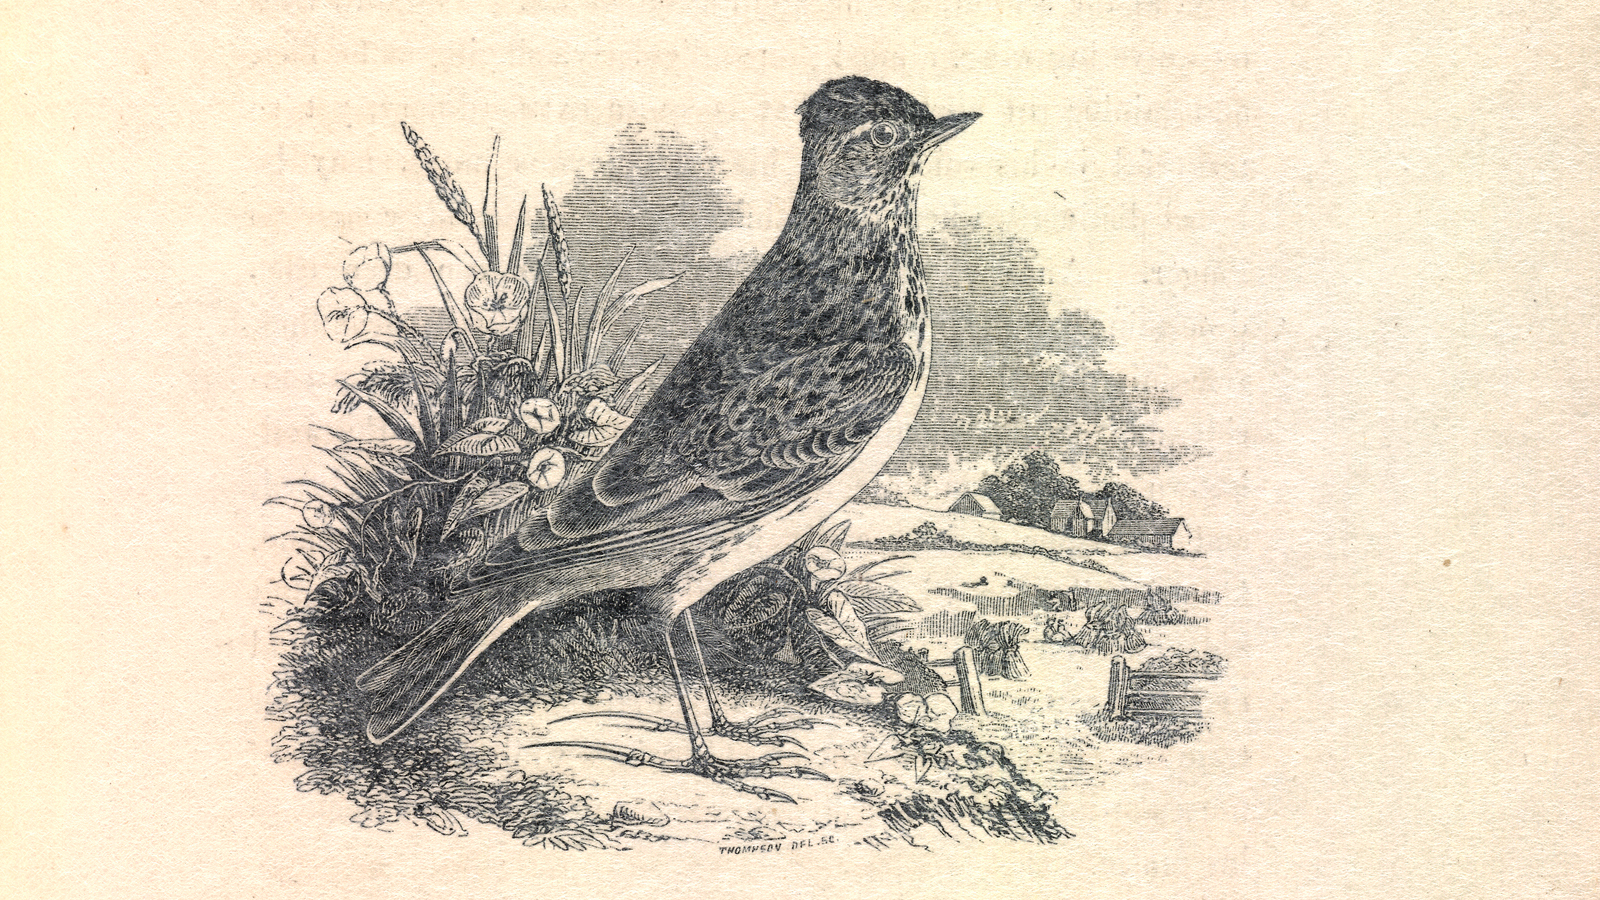 An introduction to 'To a Skylark'